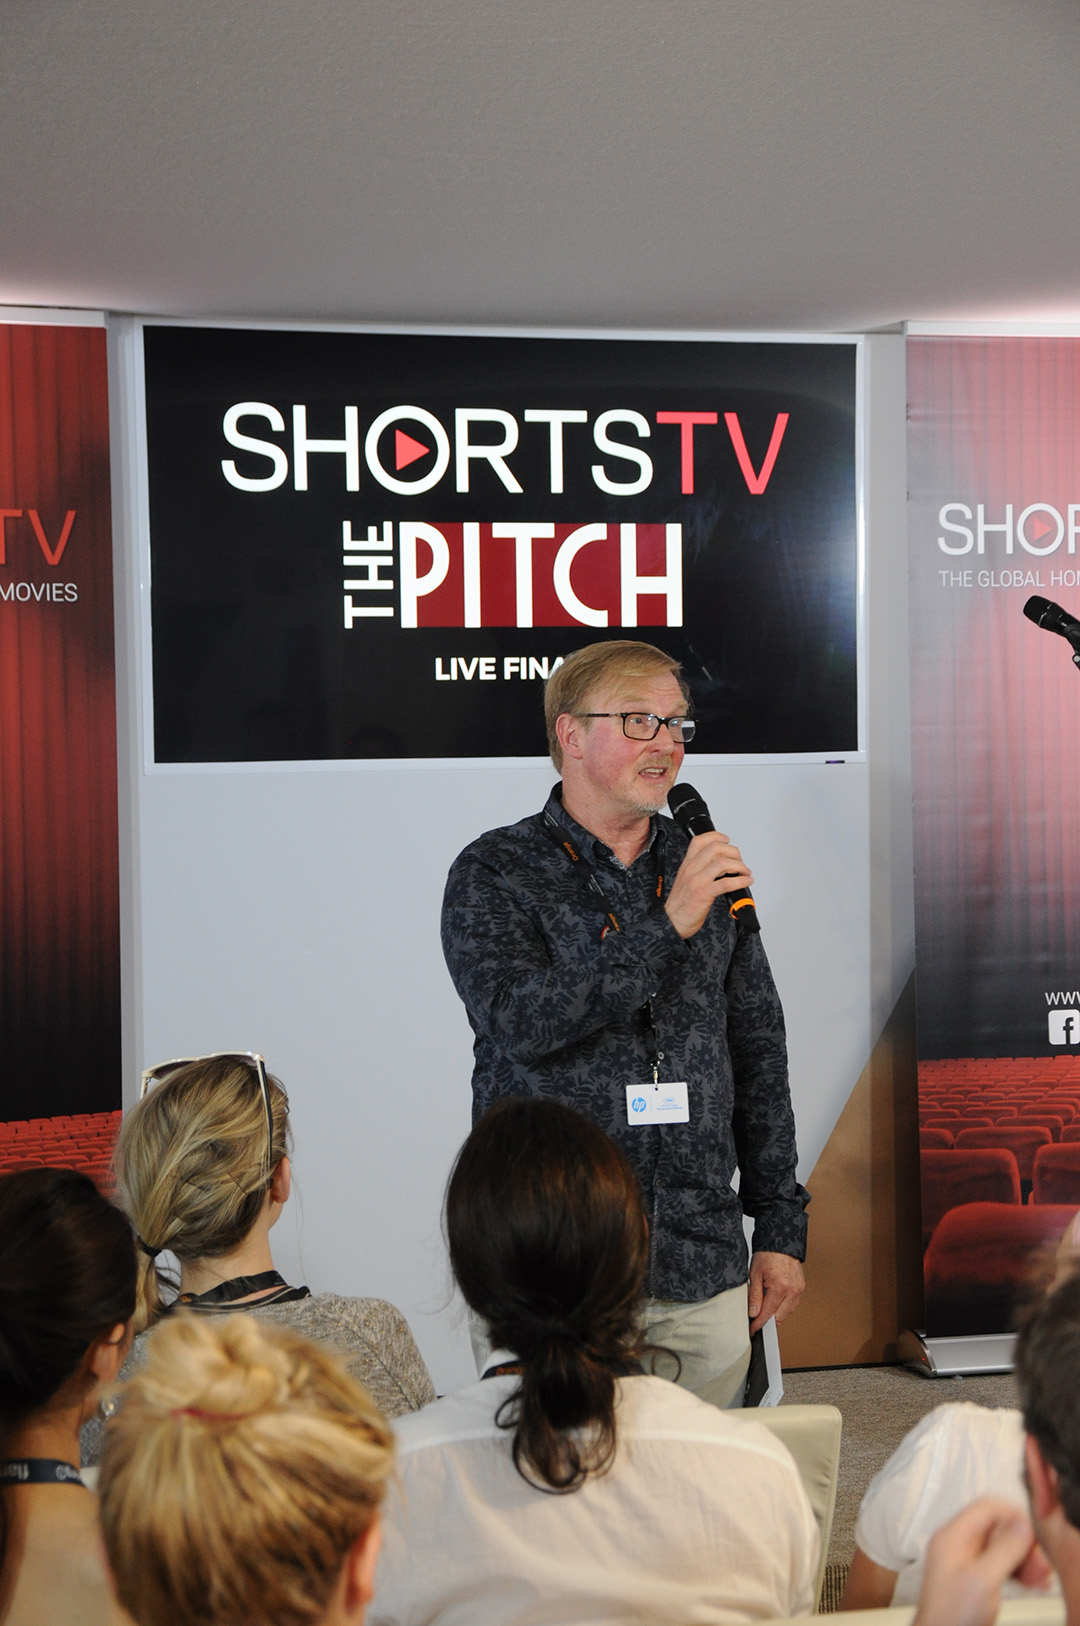 ShortsTV CEO, Carter Pilcher